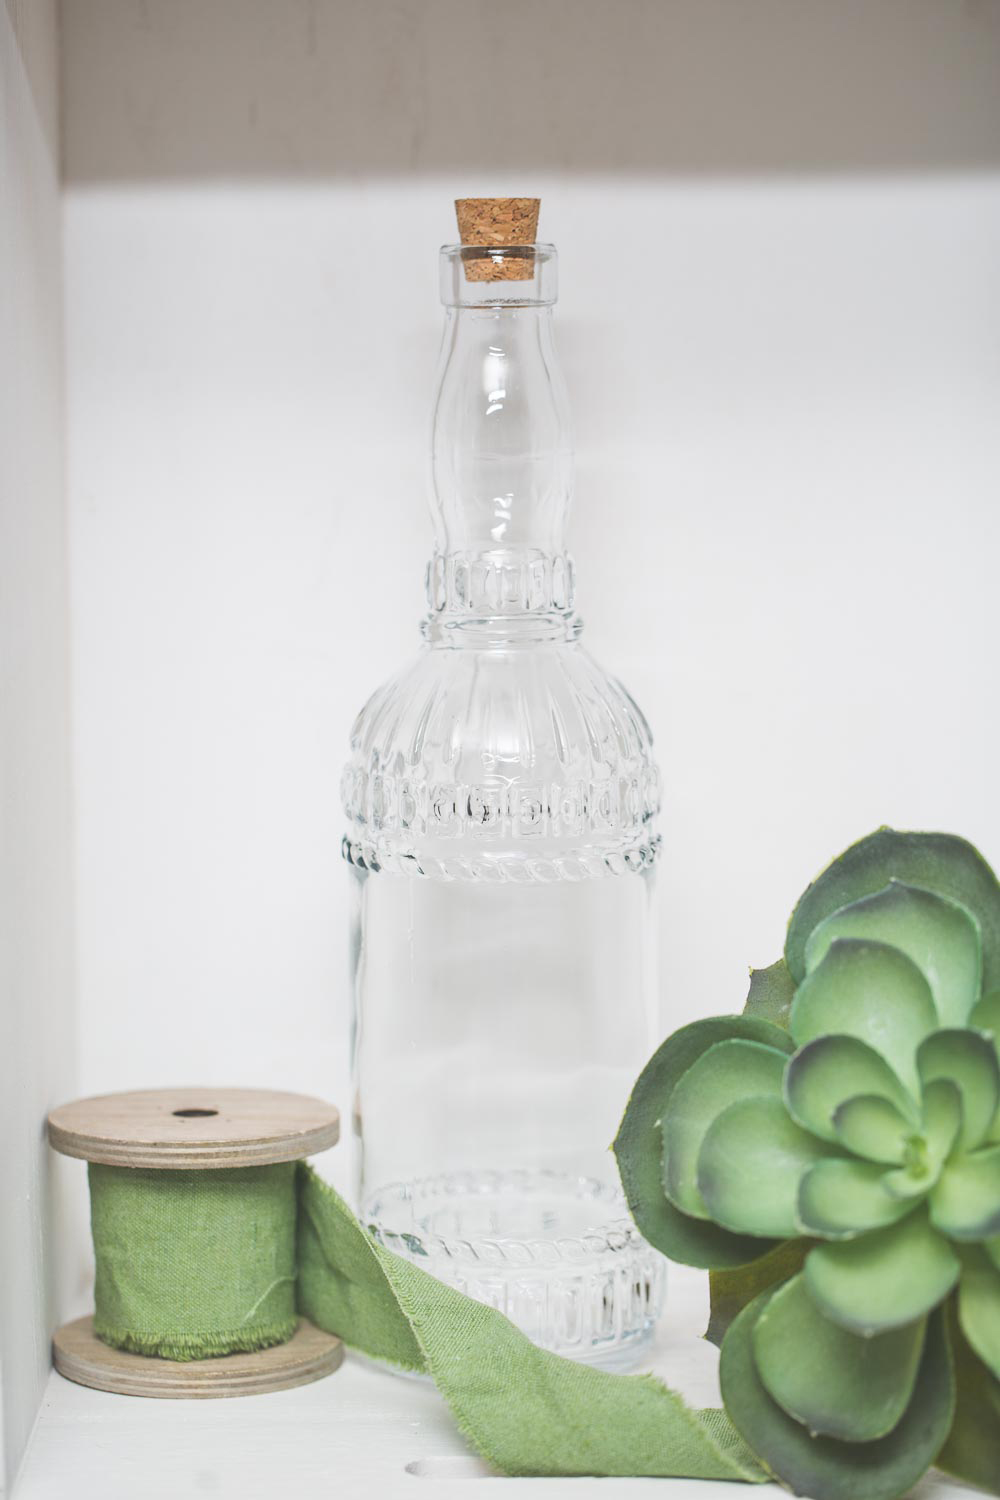 Richland Patterned Glass Bottle with Cork